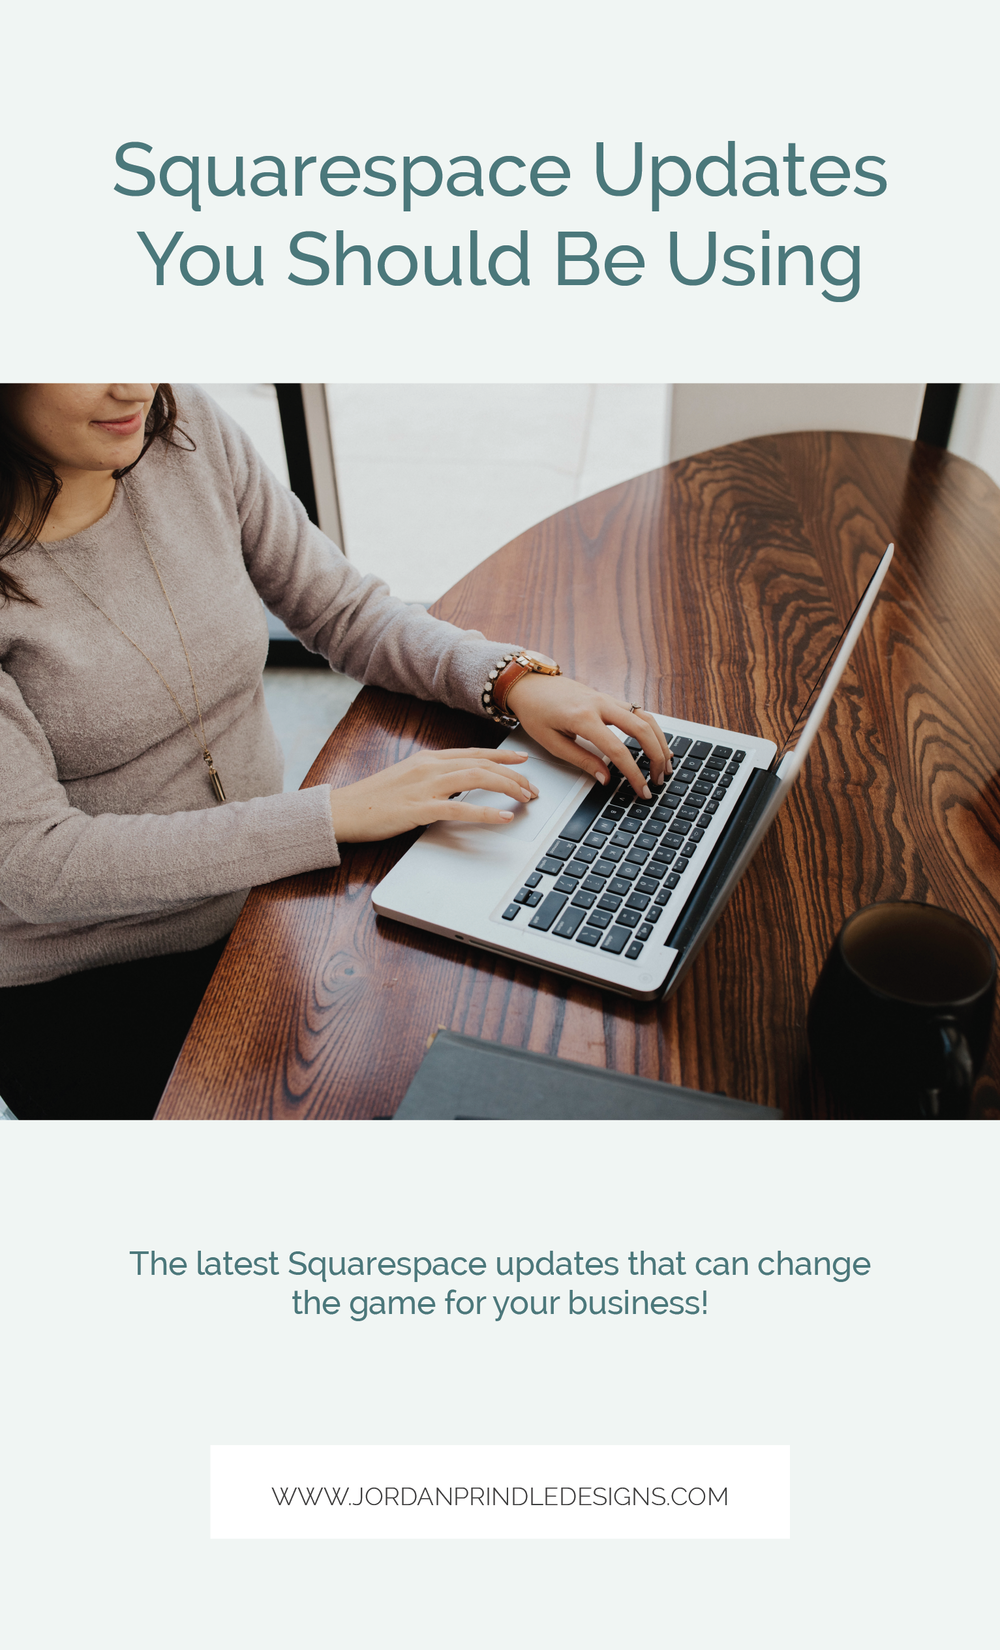 New Squarespace Updates You Should Be Utilizing | The latest updates from squarespace that will benefit your small business at www.jordanprindledesigns.com #smallbusineshelp #squarespacetips #webdesigntips